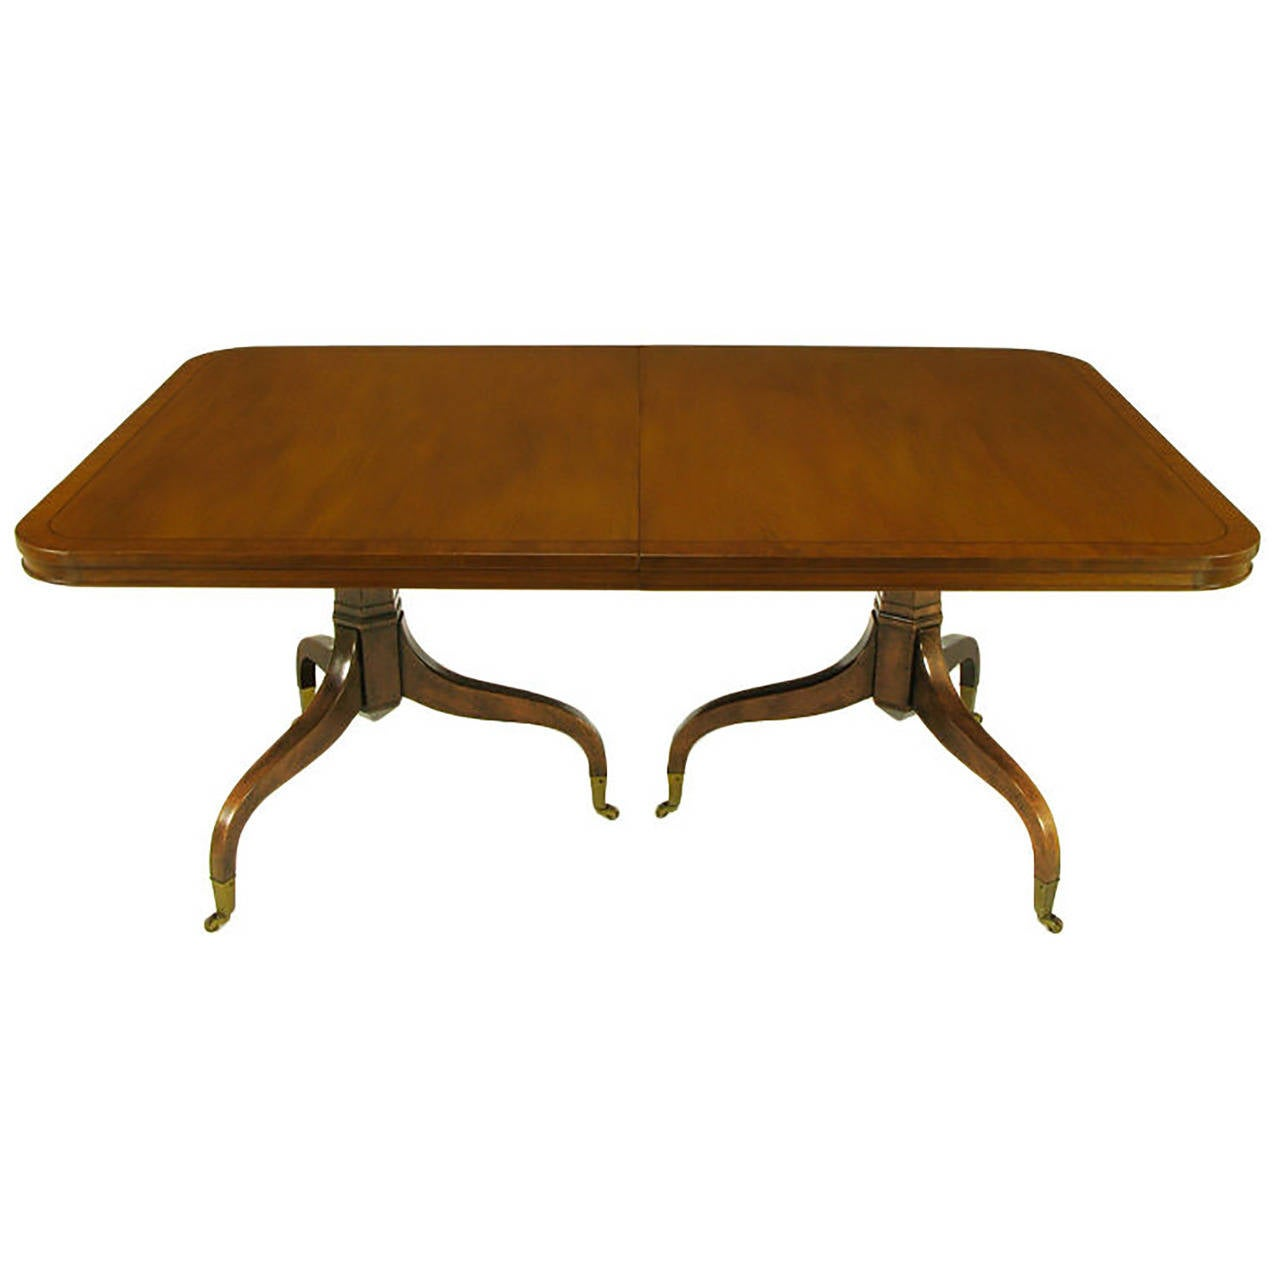 Kittinger Mahogany Dining Table With Unusual Double Pedestal Base 1